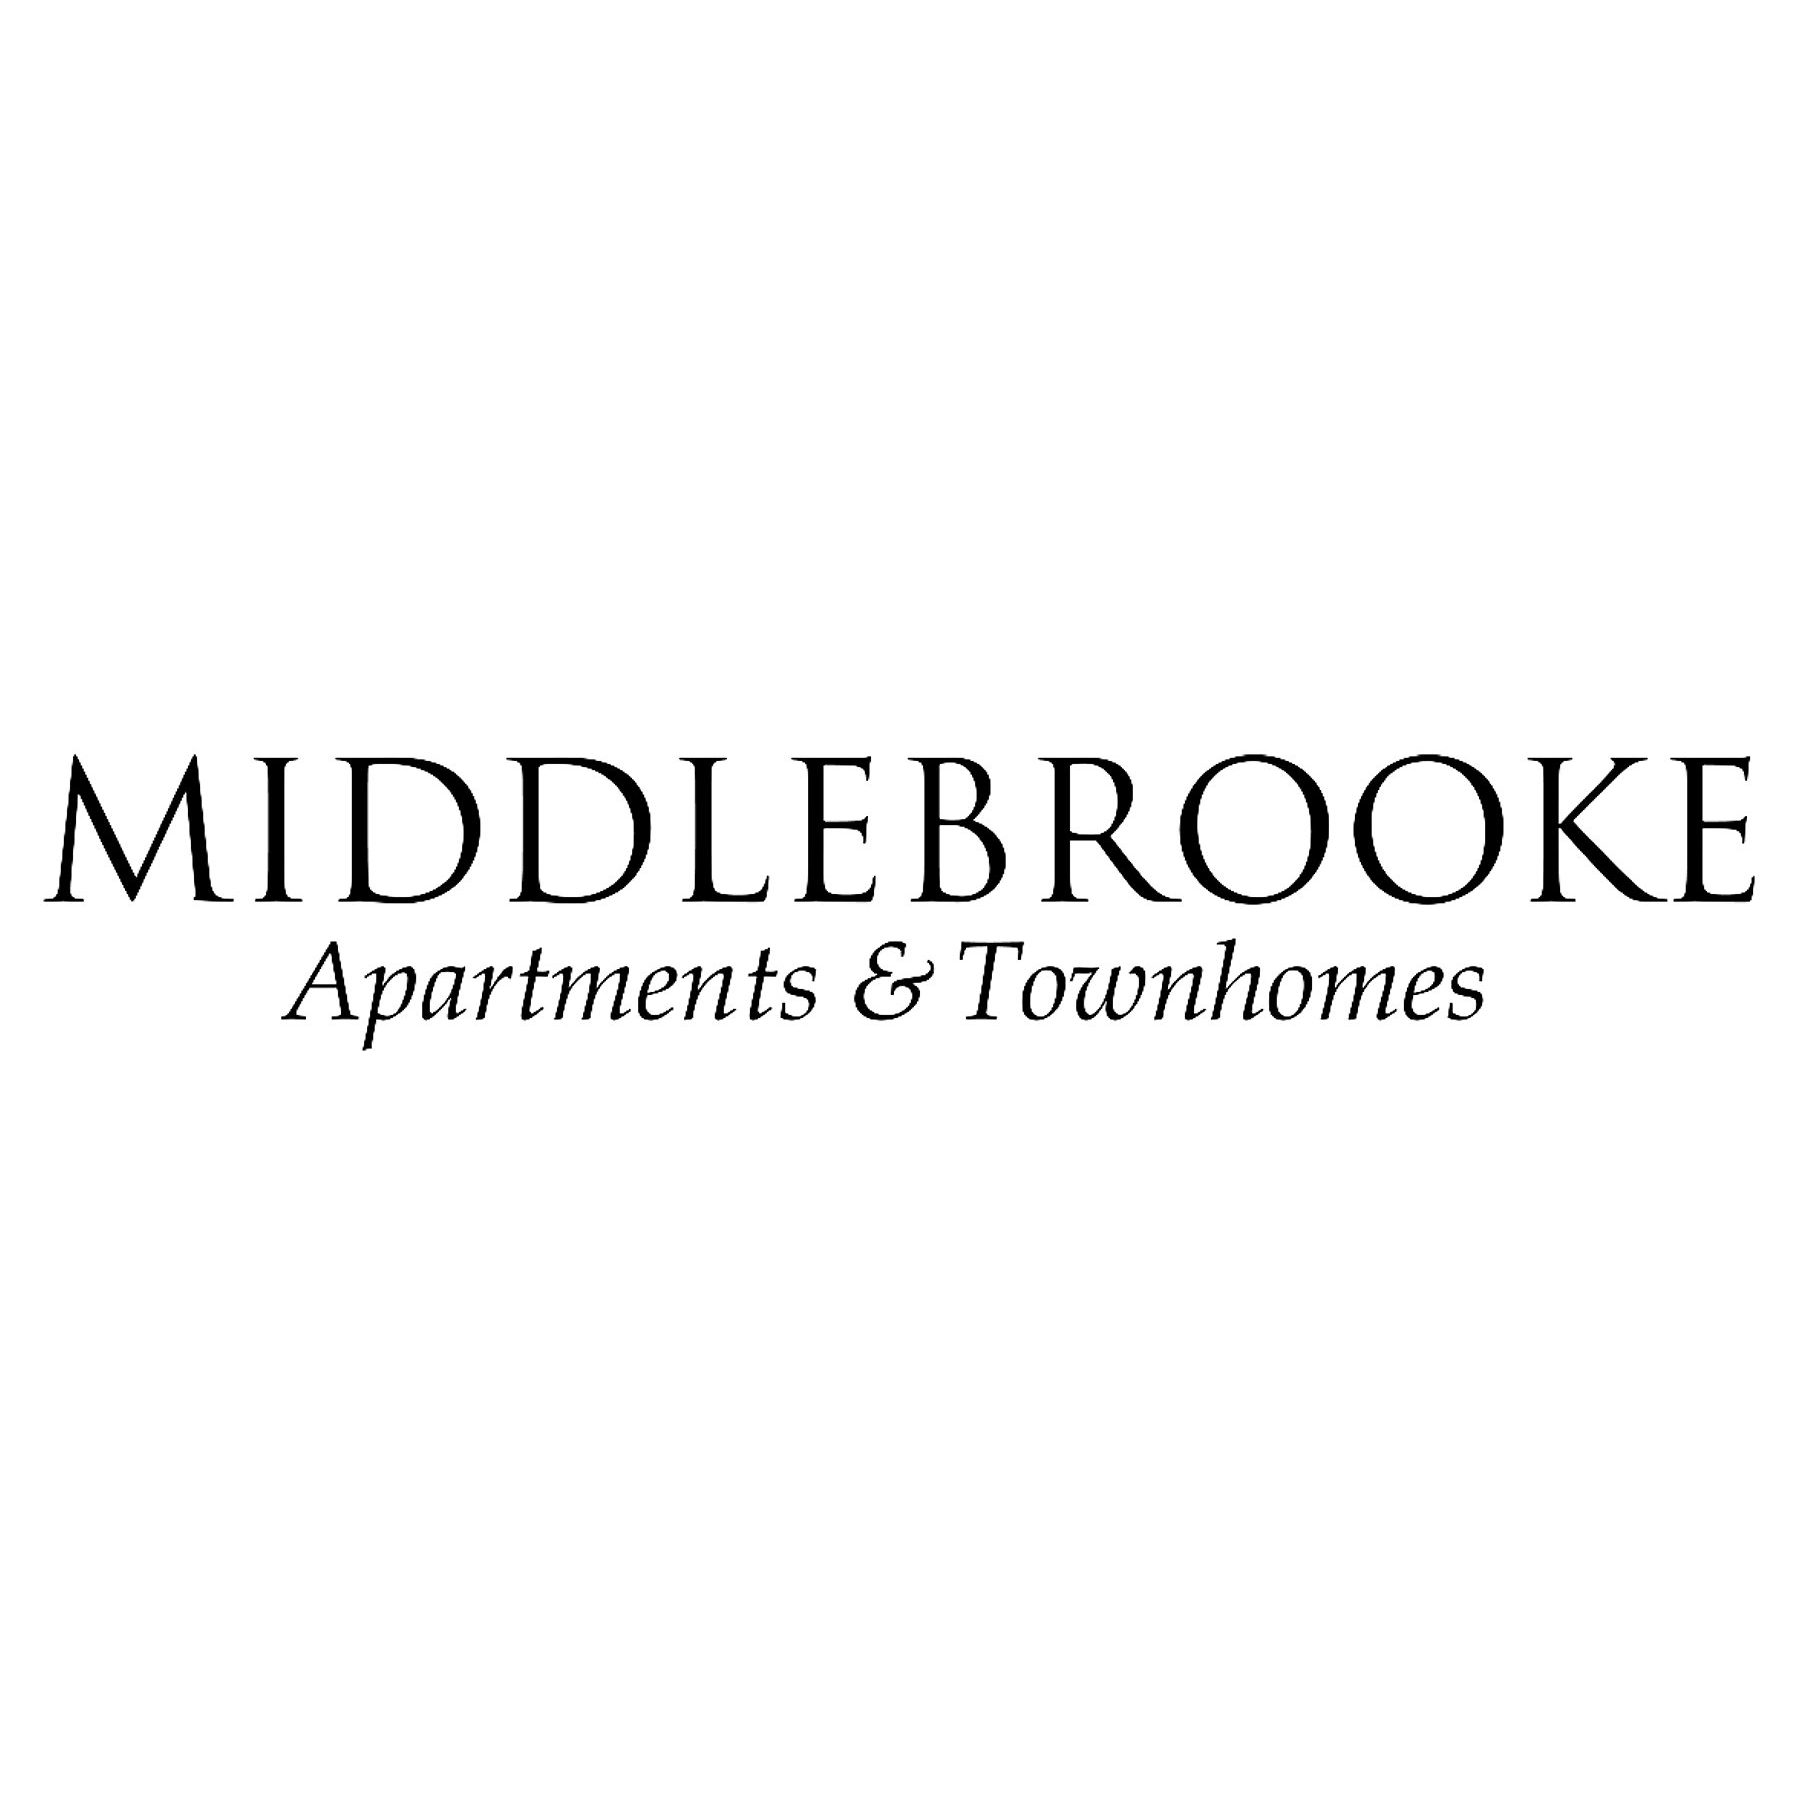 Middlebrooke Apartments and Townhomes